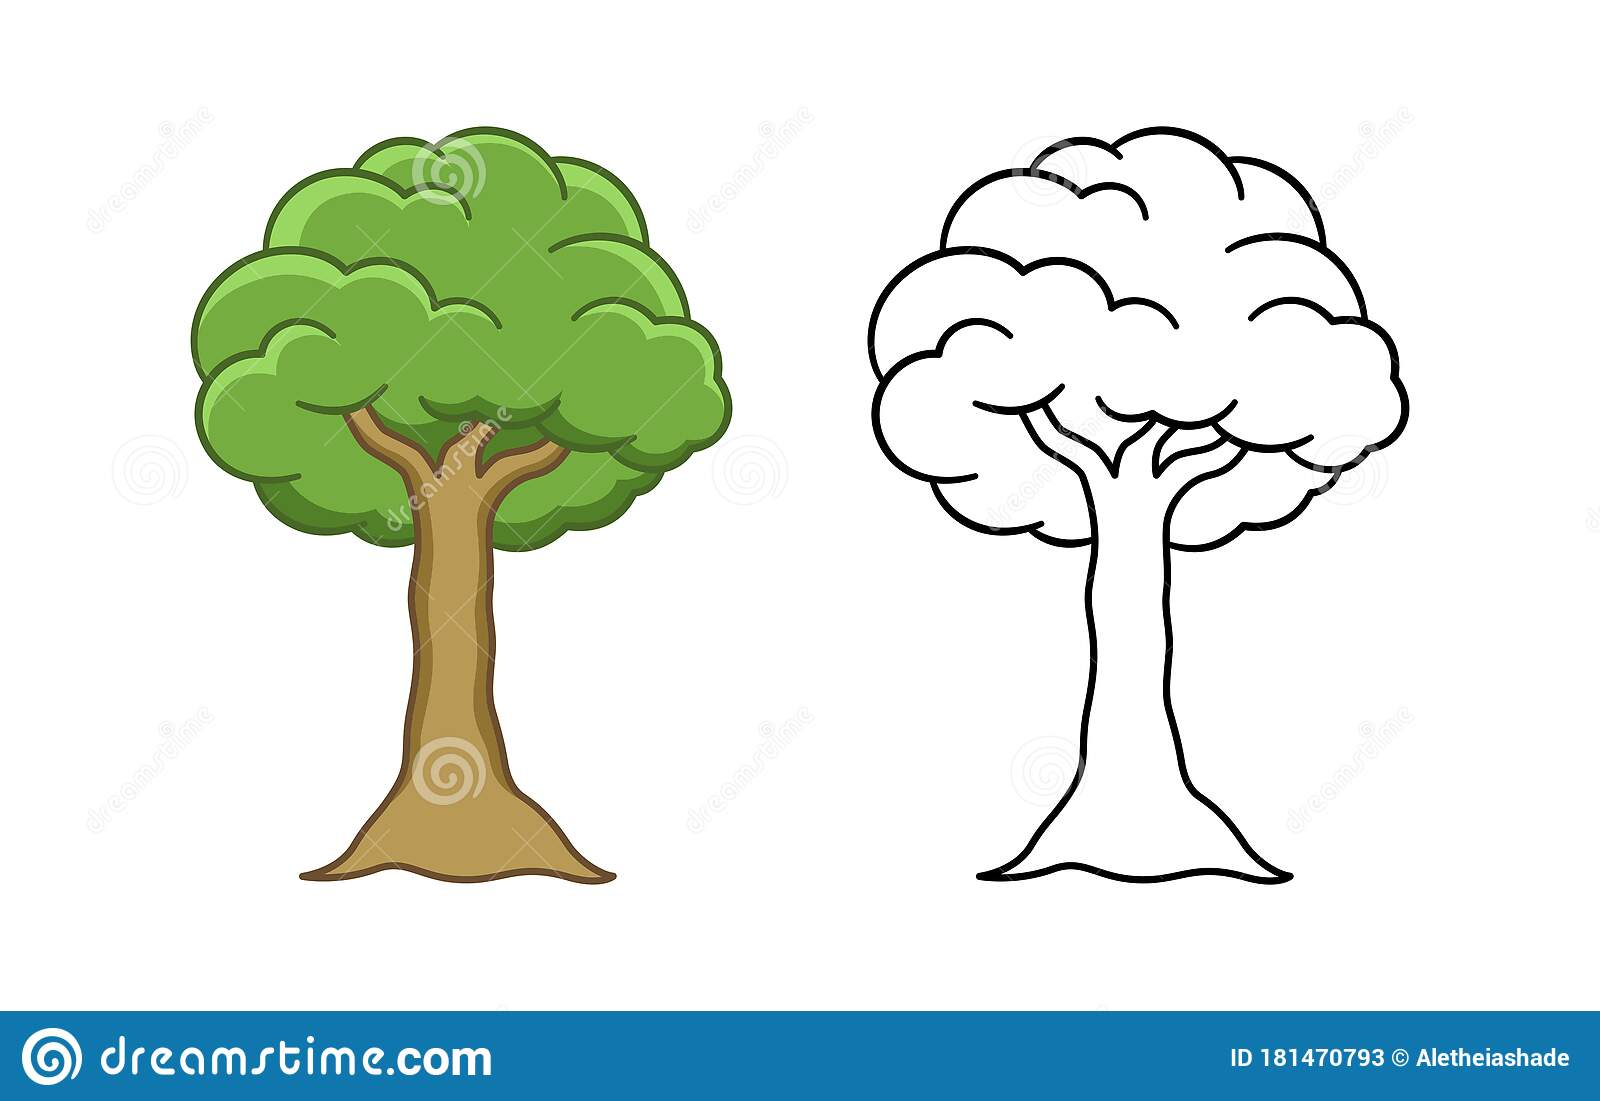 Cartoon Tree Colored And Outline Vector Illustration Simple Coloring Worksheet Workbook Page For Kids Stock Vector Illustration Of Coloring Book 181470793 C4d 3ds dae dxf fbx obj wrl oth. dreamstime com